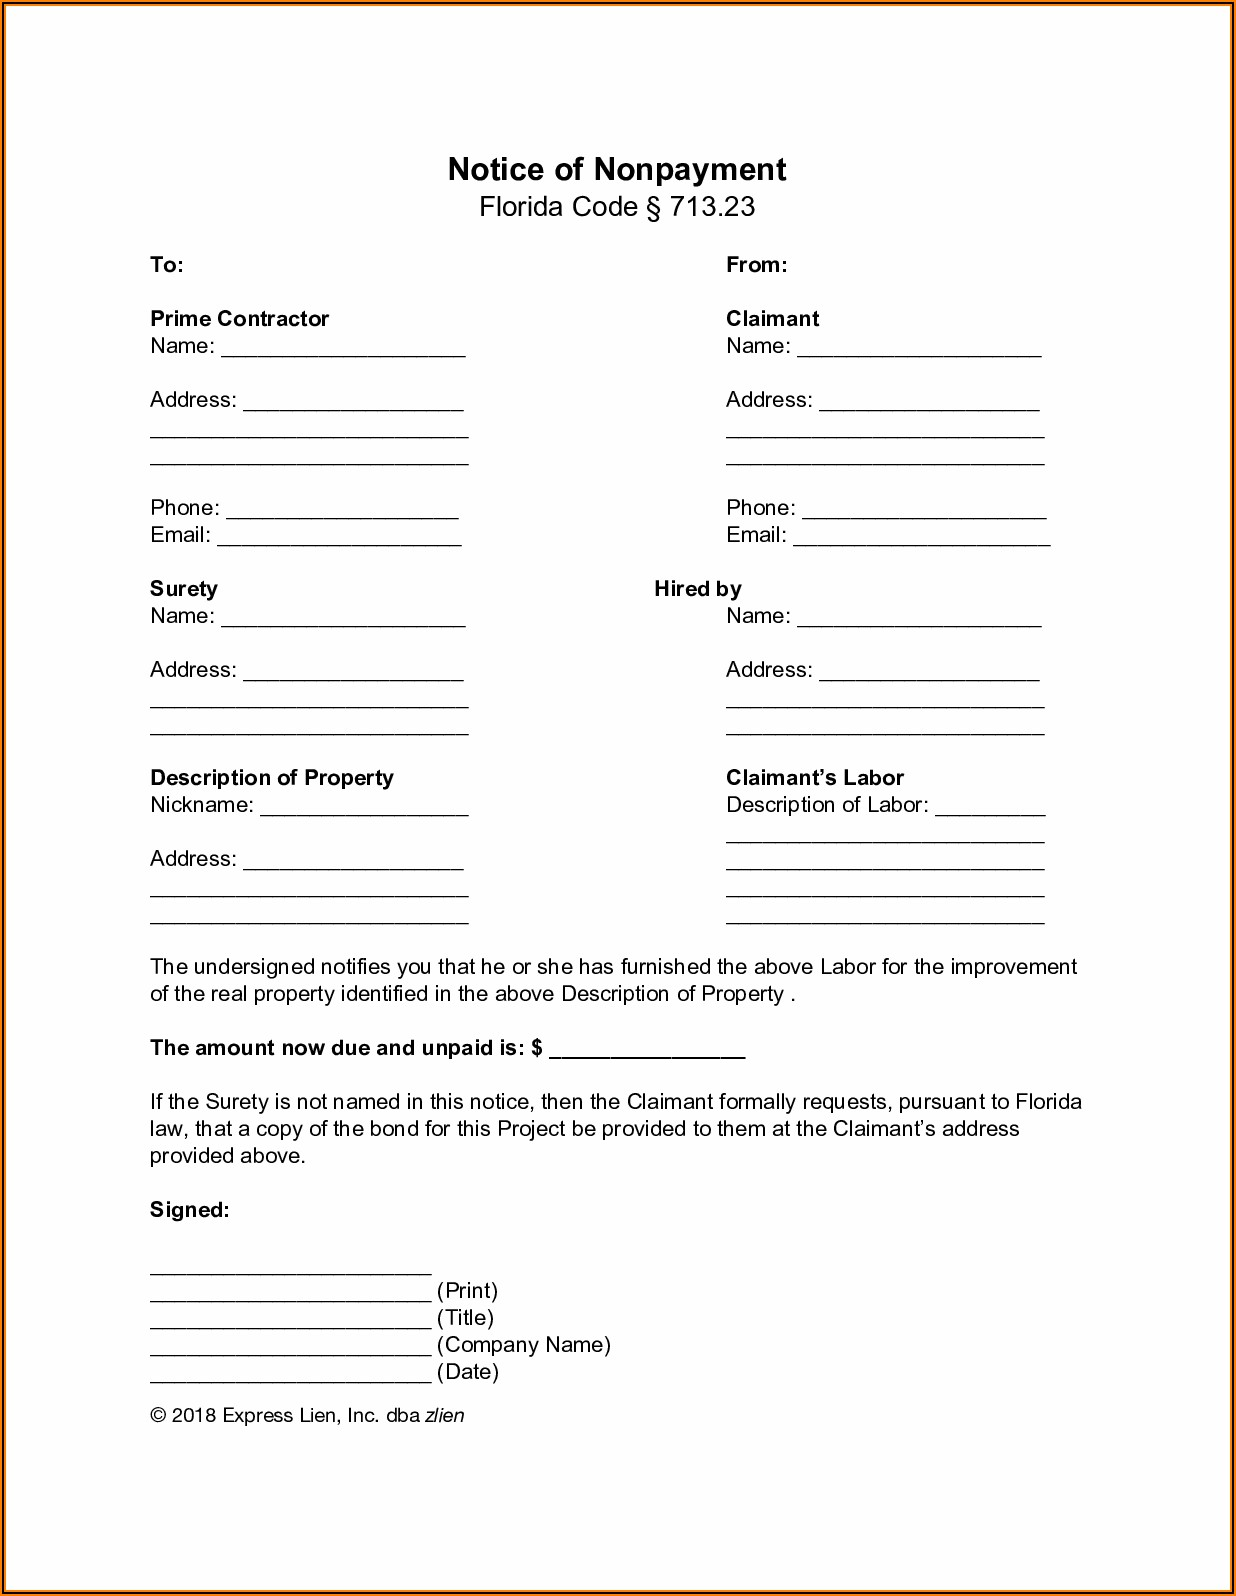 Broward County Probate Court Forms